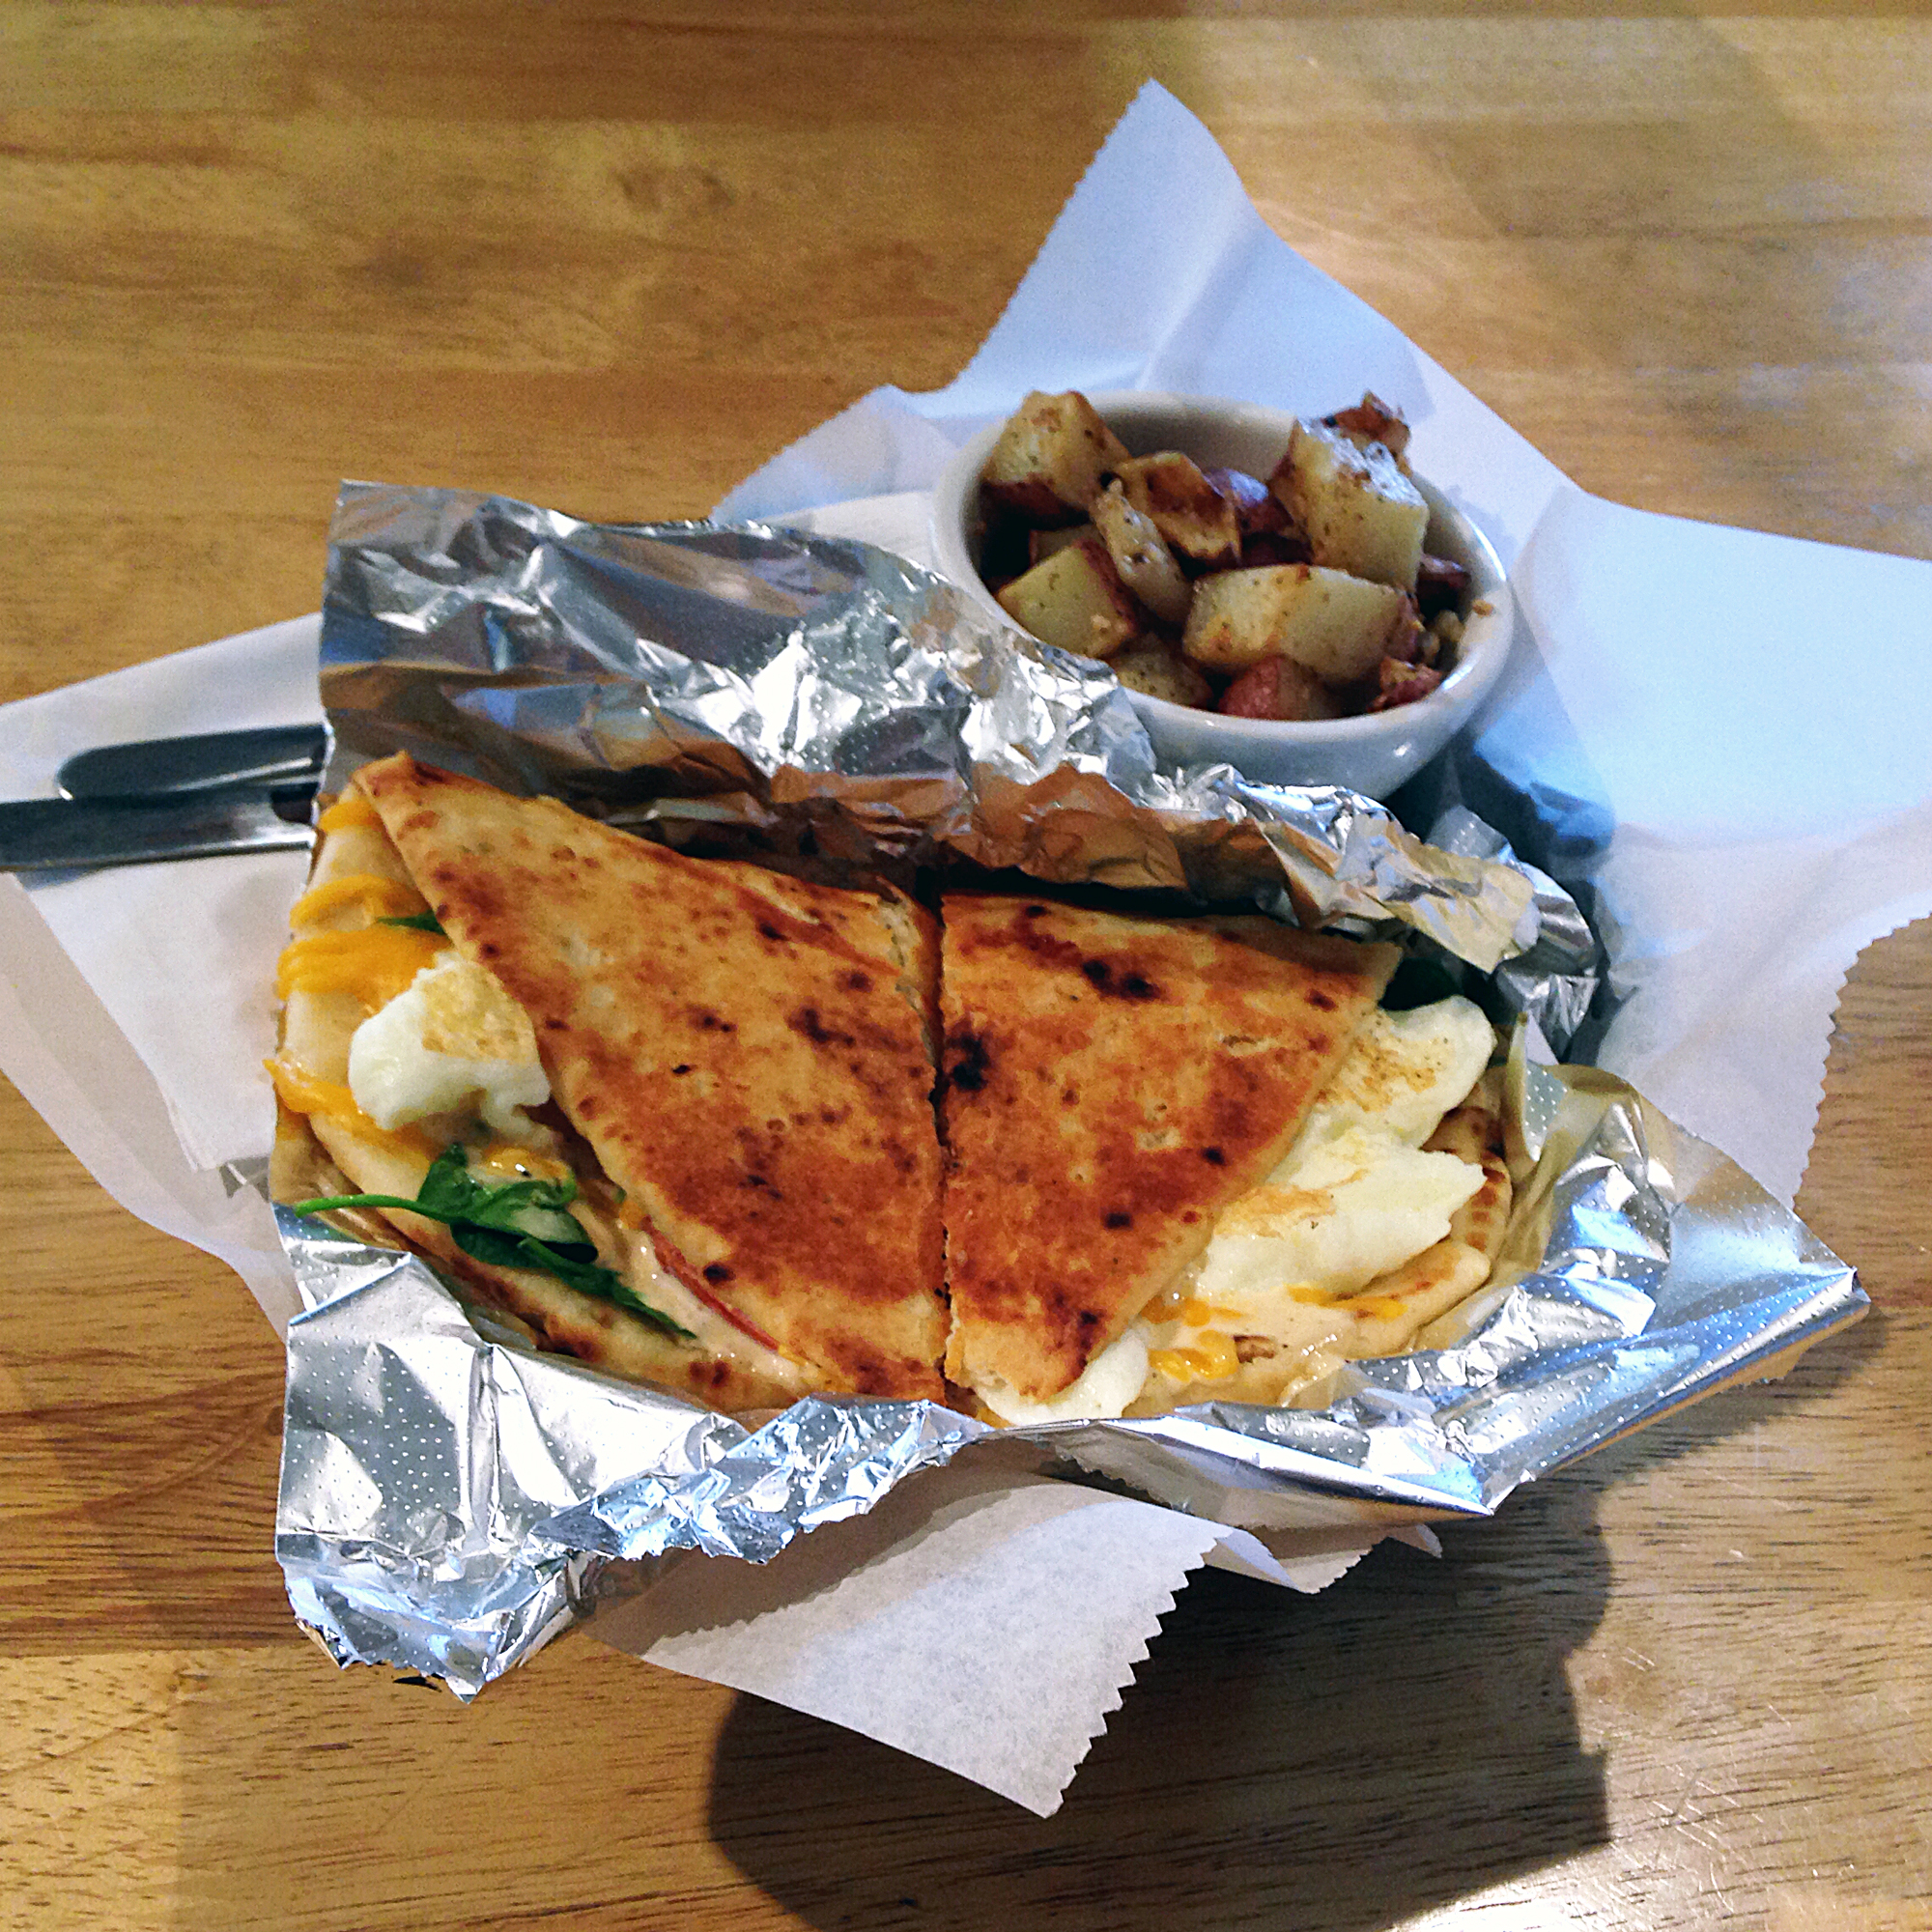 The breakfast naan quesadilla at Earth Friends Cafe